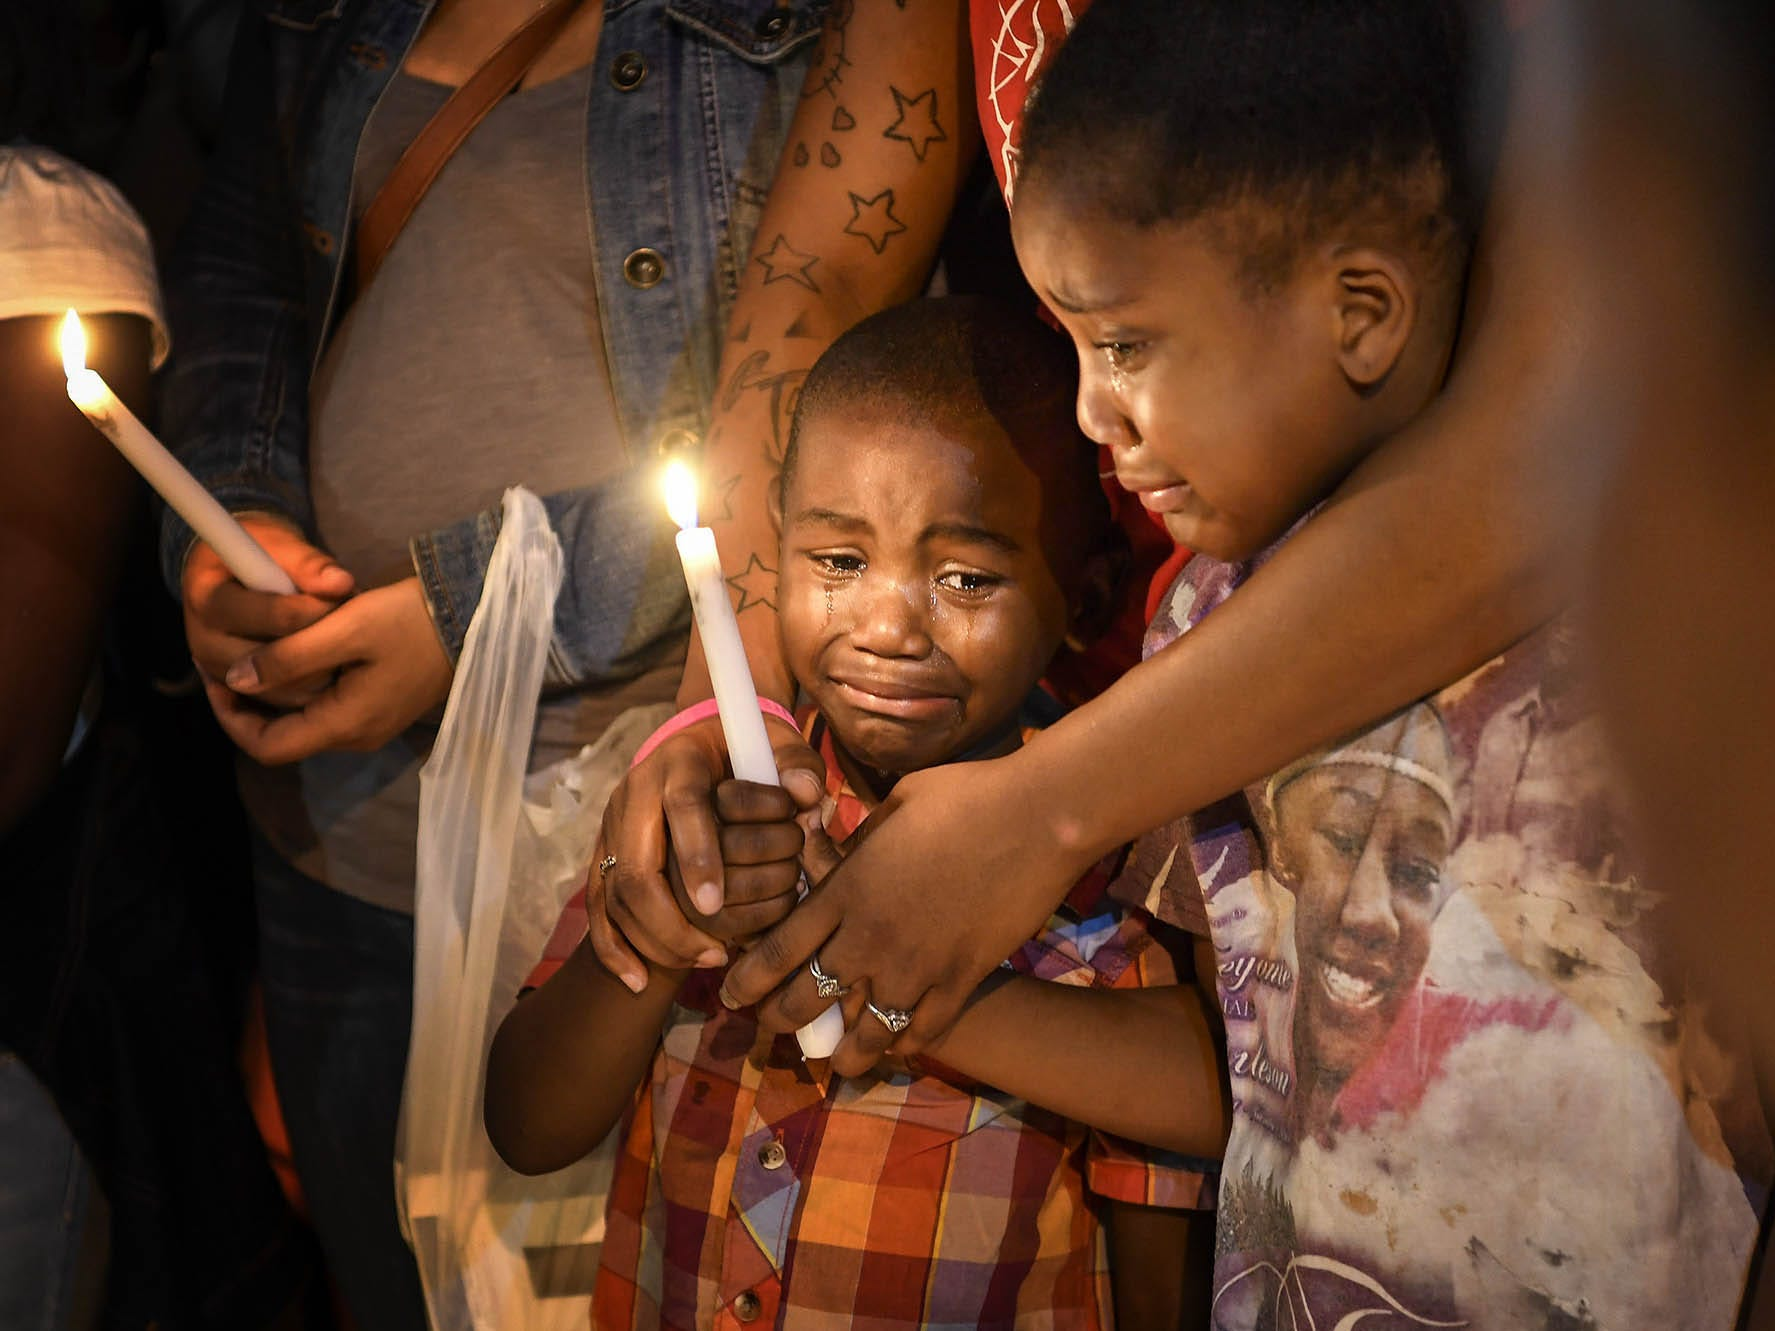 Latrelle Cox Jr. and Corionna Offutt are held by their mother as they pay their respects for Deberianah Begley during a candlelight vigil at the James A. Cayce Homes on Oct. 9, 2017.